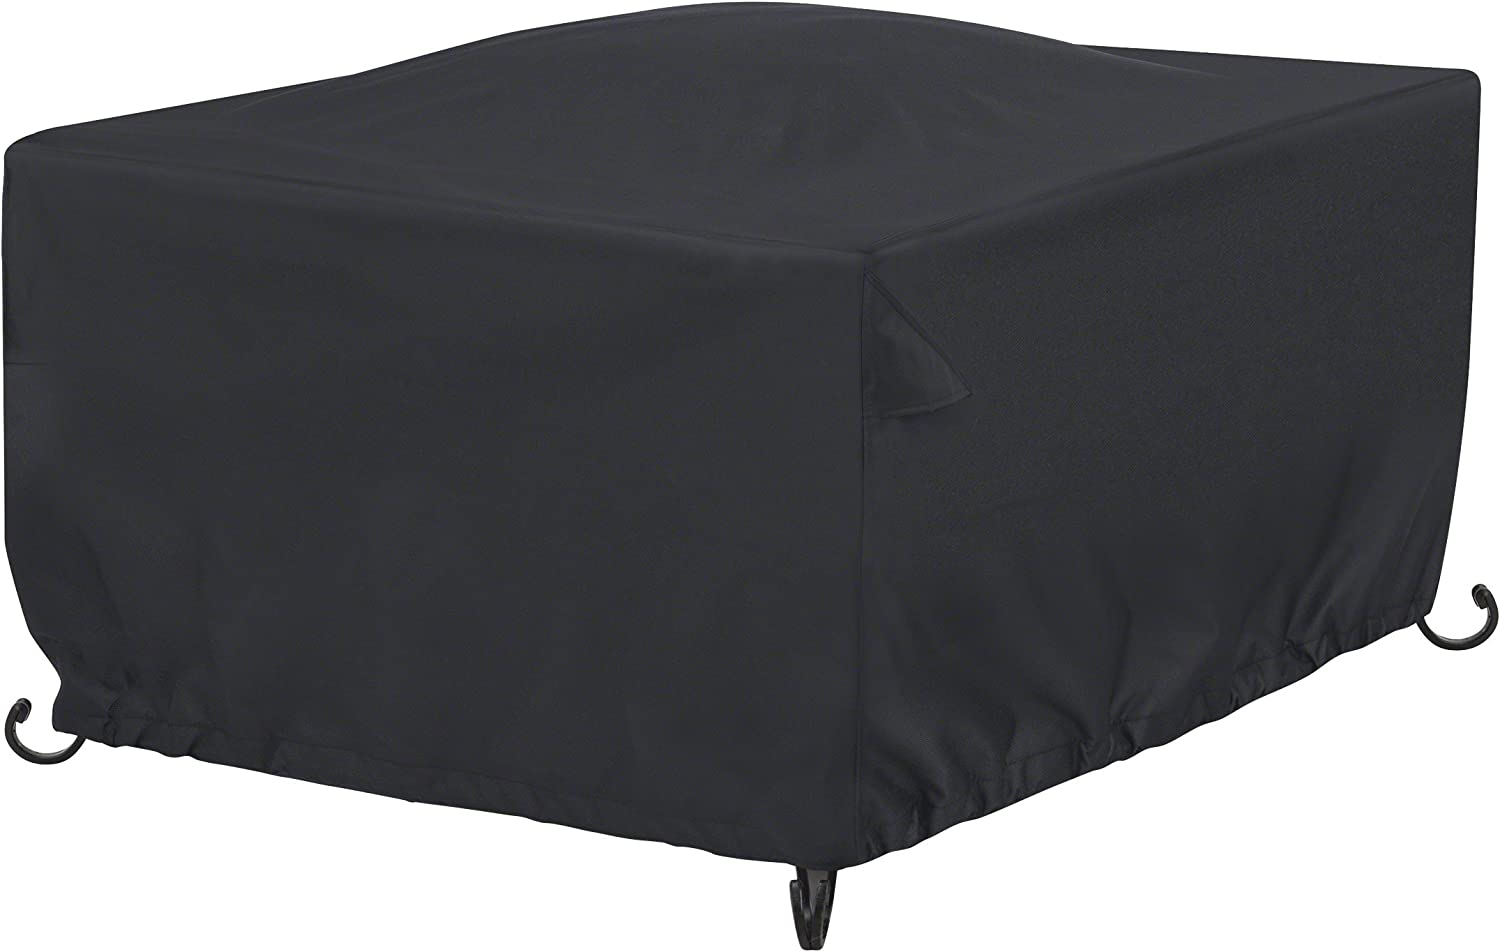 B071DNM4NK AmazonBasics Outdoor Square Patio Fire Pit or Table Cover, 42 Inch, Black 81RpipZby7L